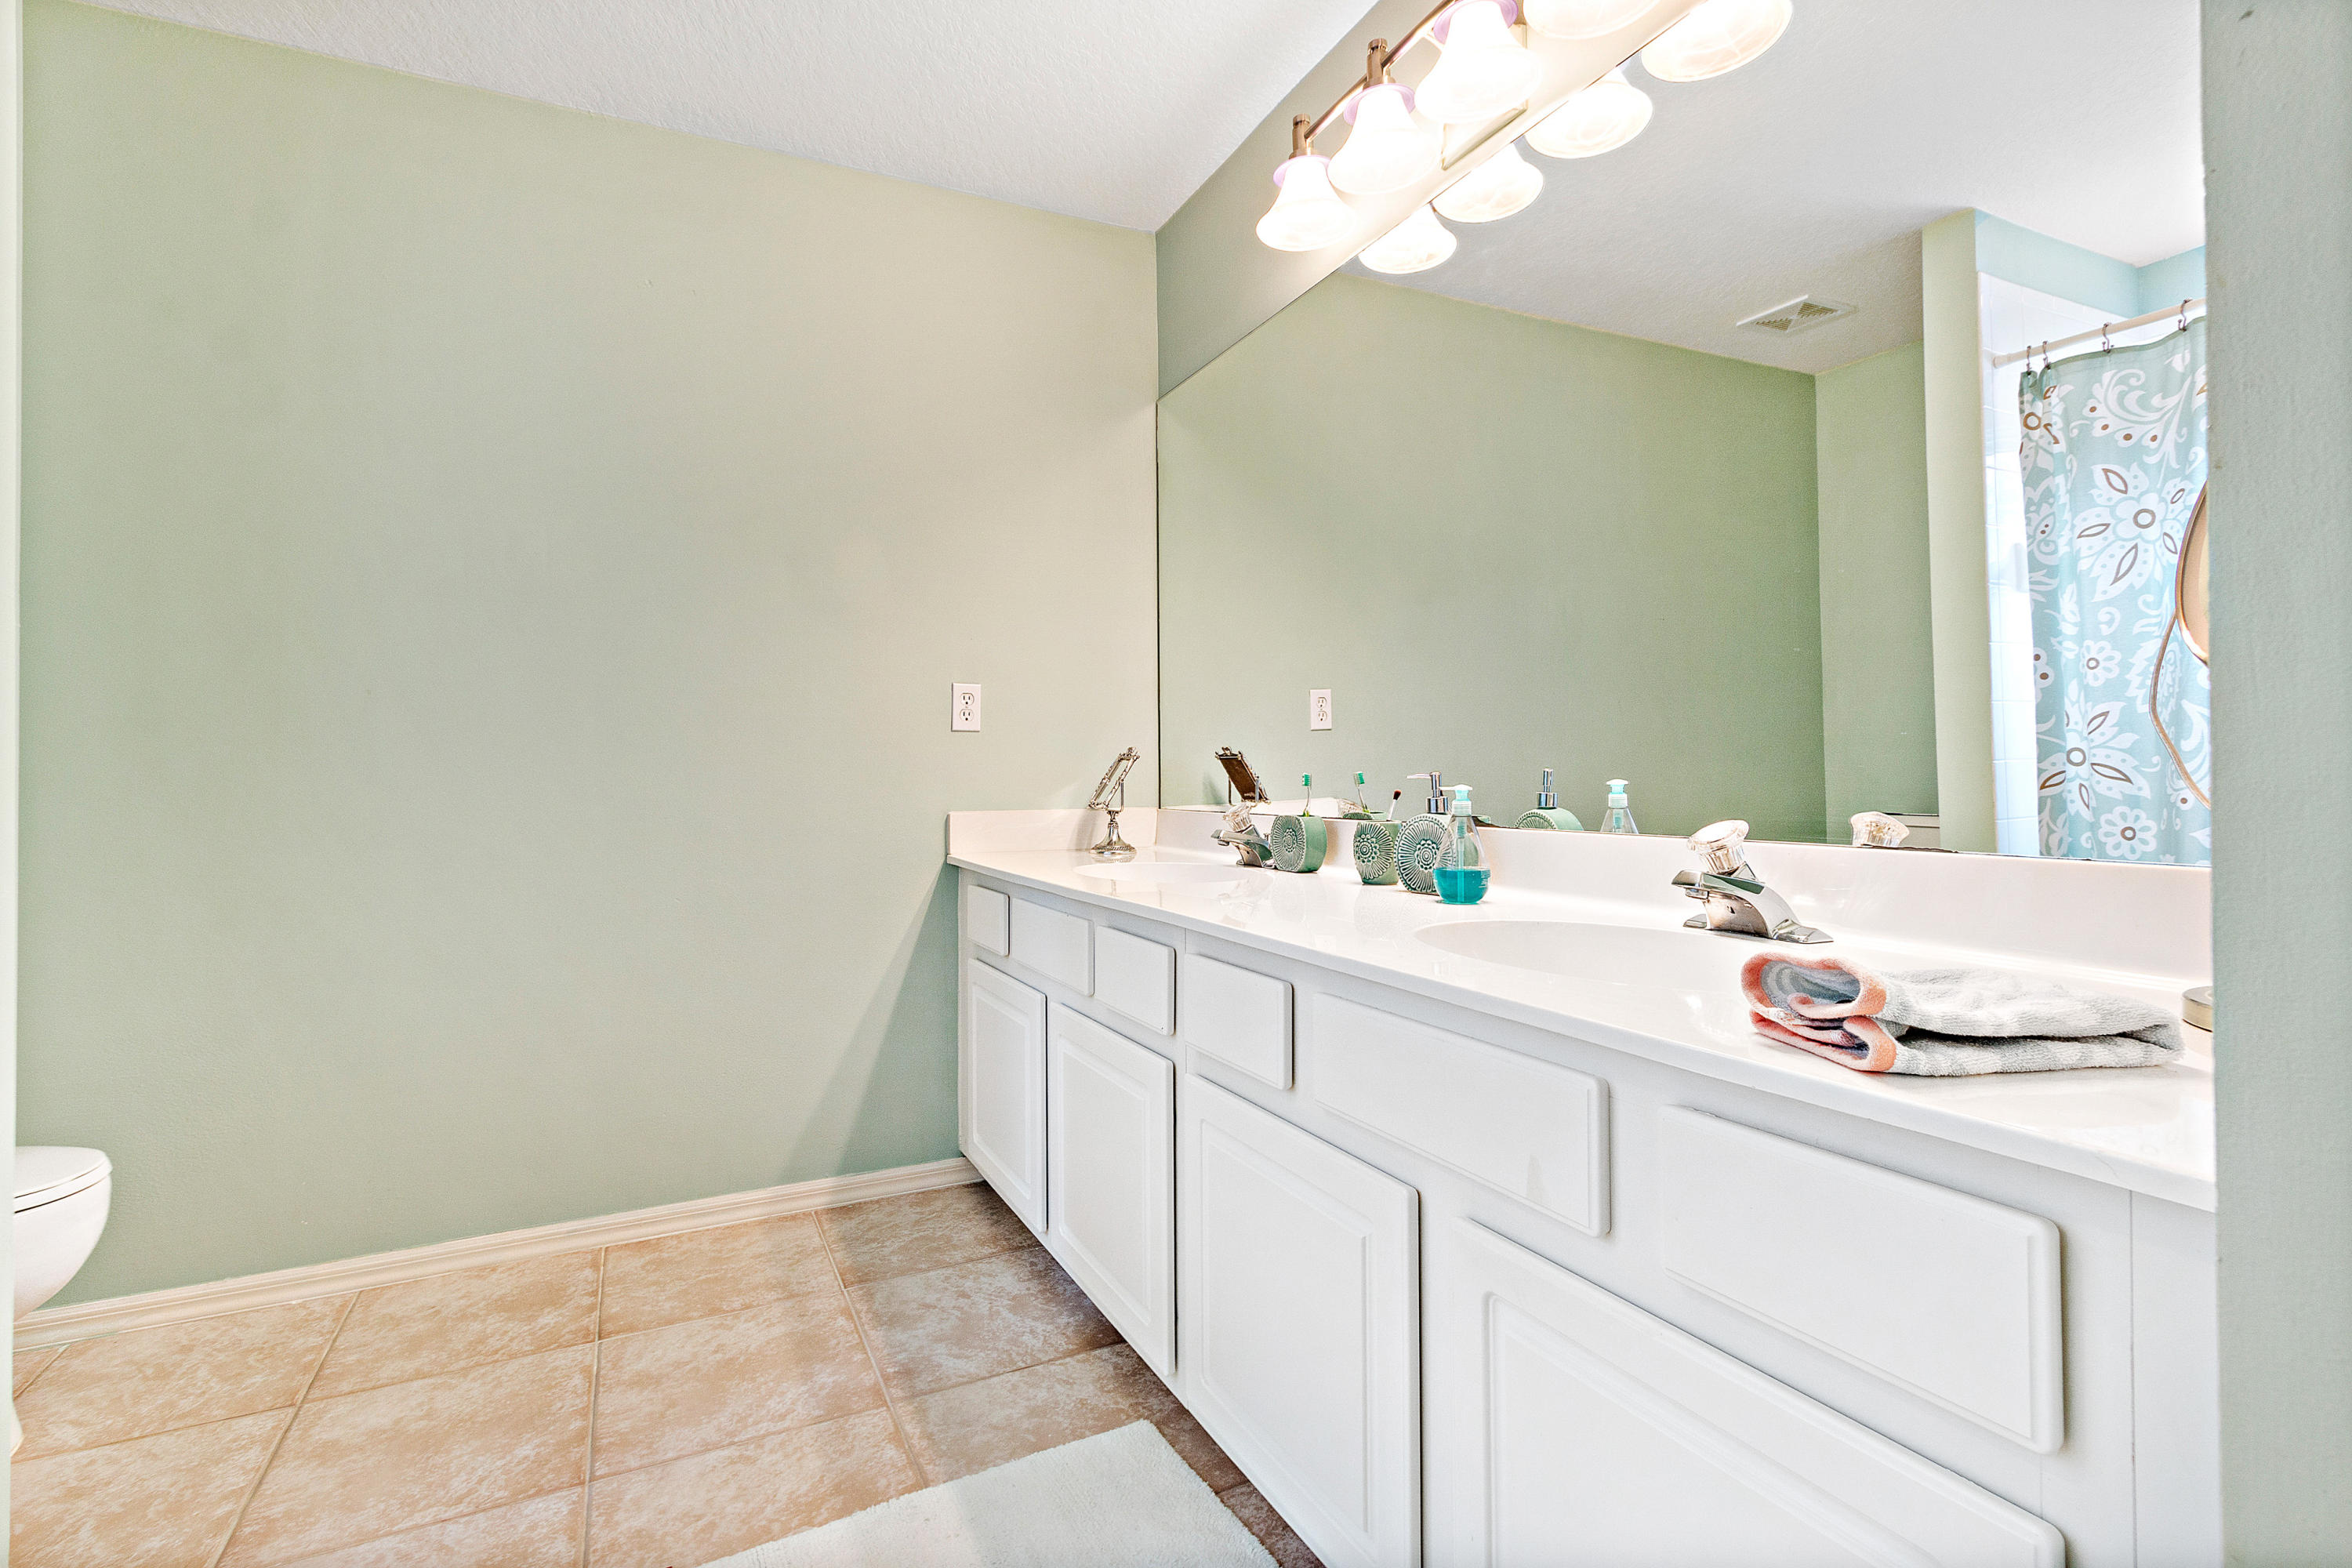 675 Enfield Court, Delray Beach, Florida 33444, 4 Bedrooms Bedrooms, ,2.1 BathroomsBathrooms,Single Family,For Sale,Enfield,RX-10463836